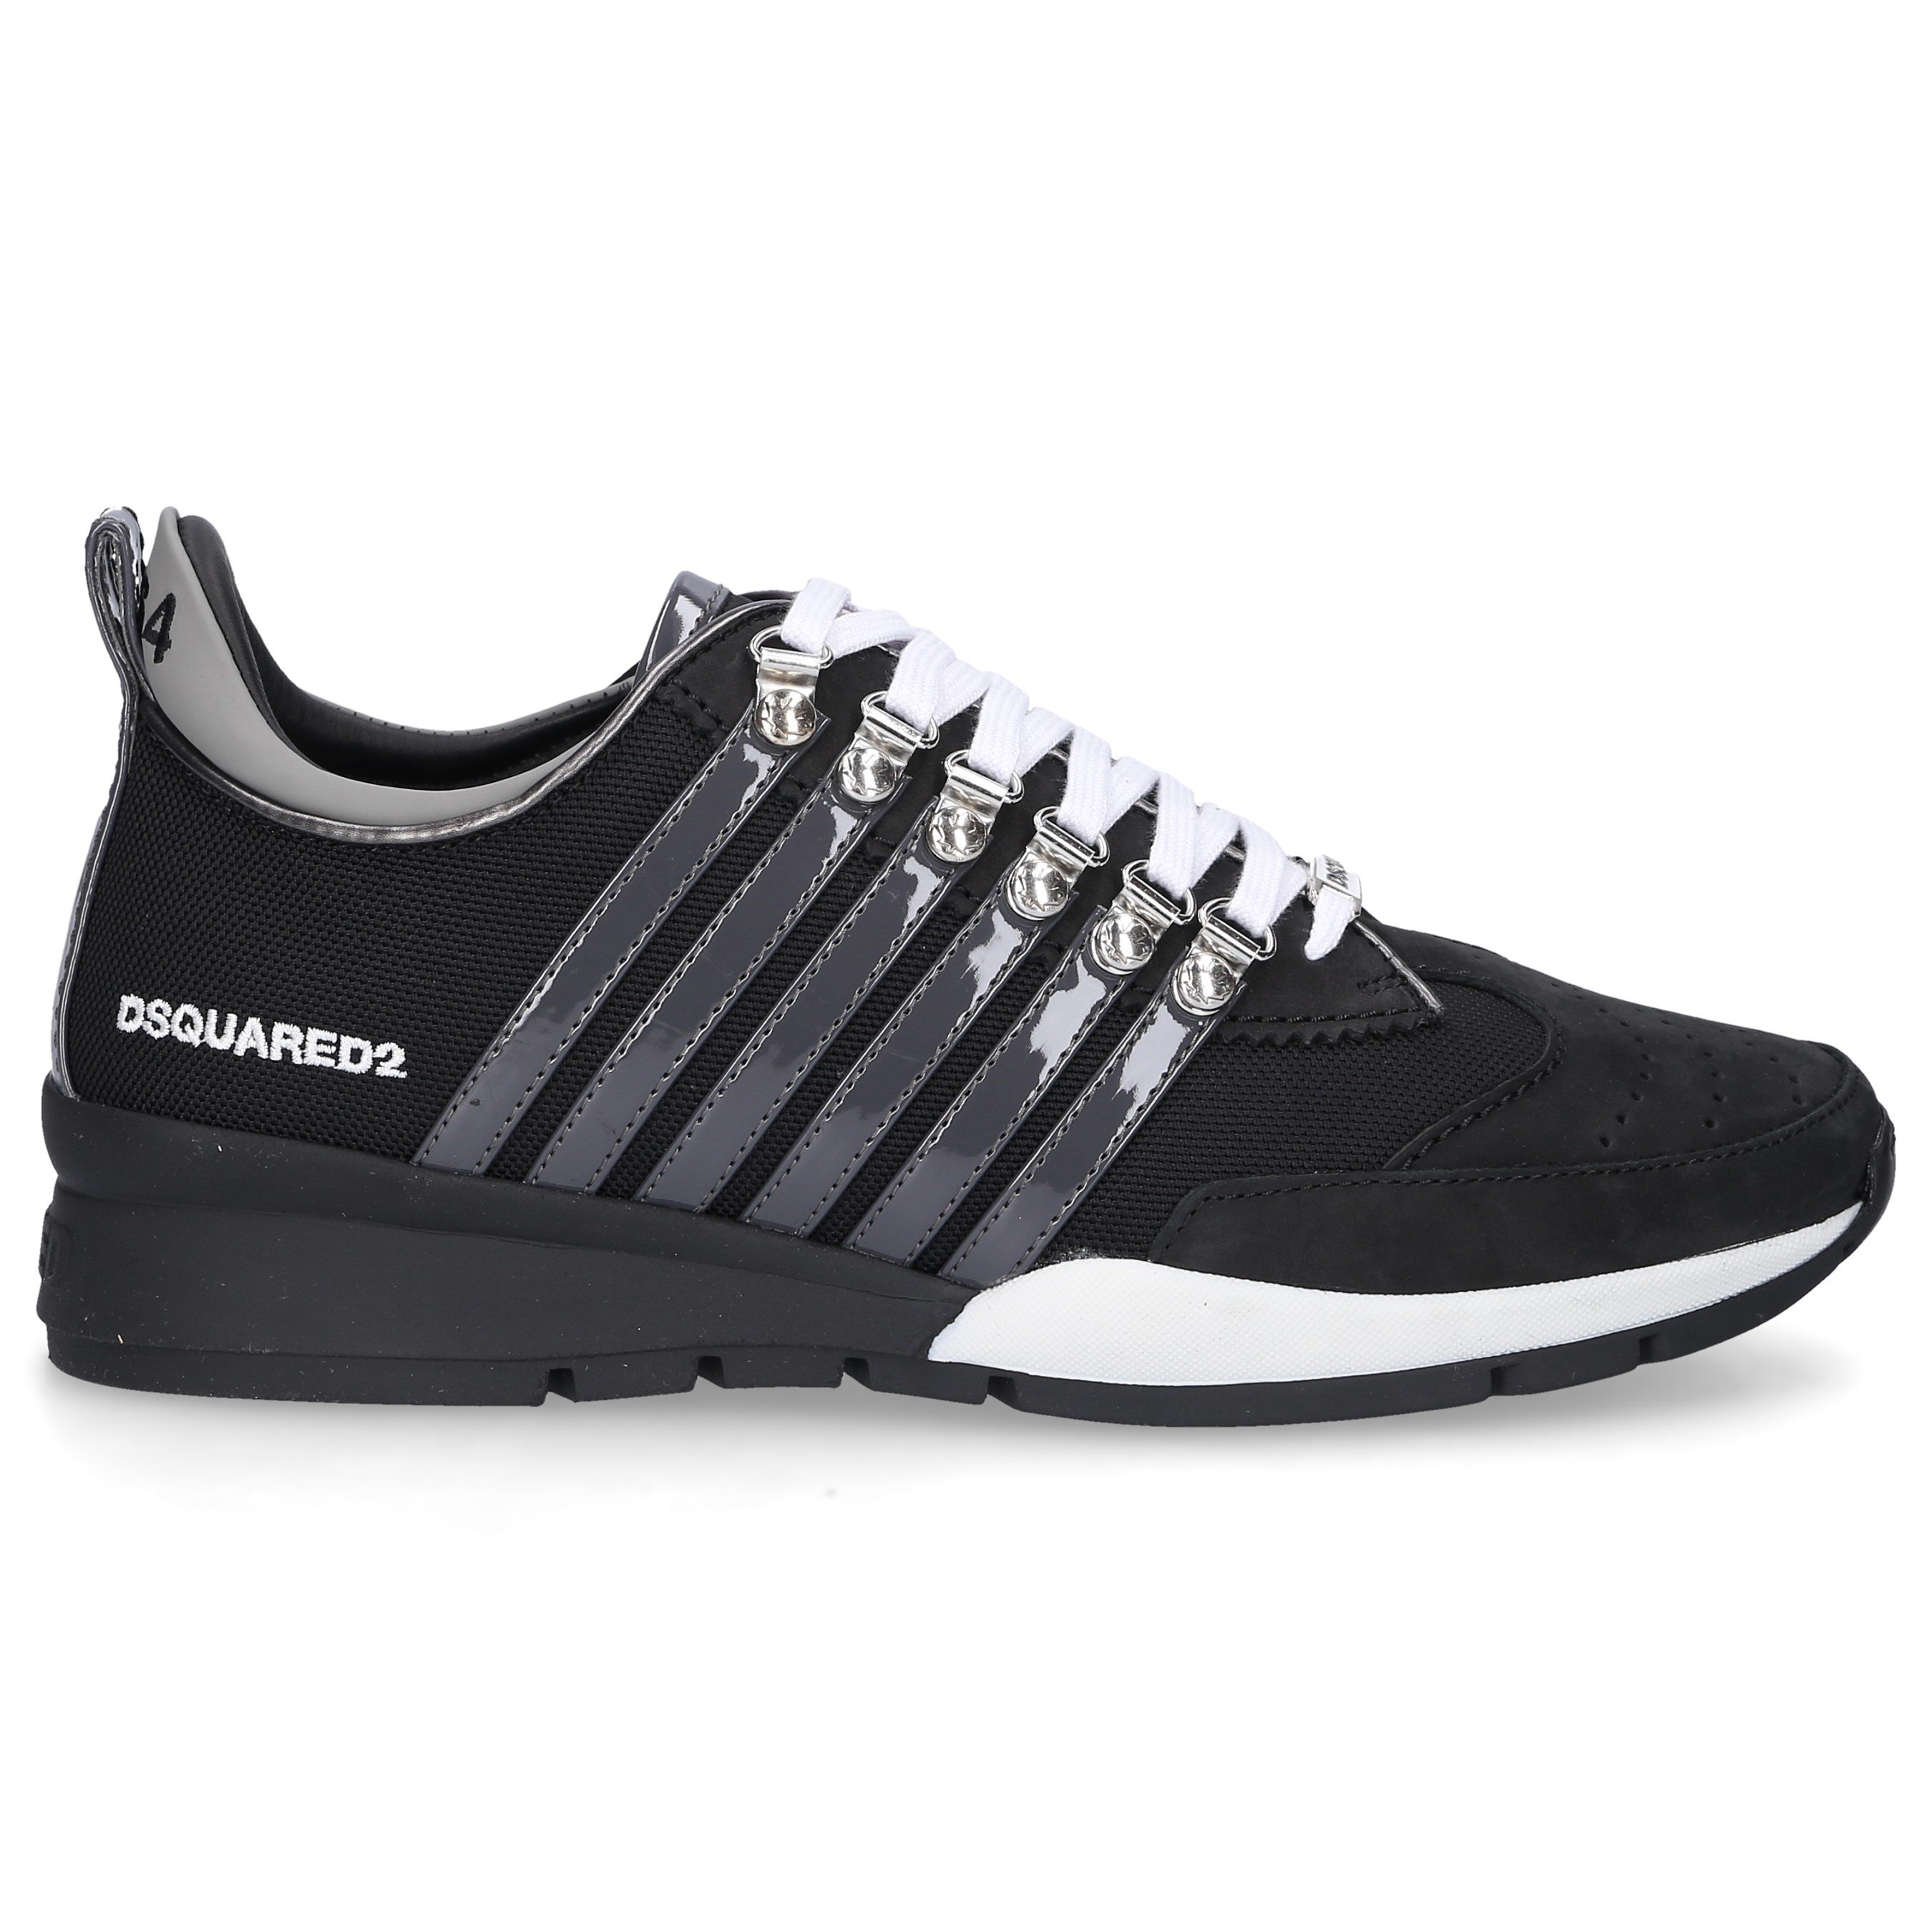 Dsquared2 SNEAKERS BLACK 251